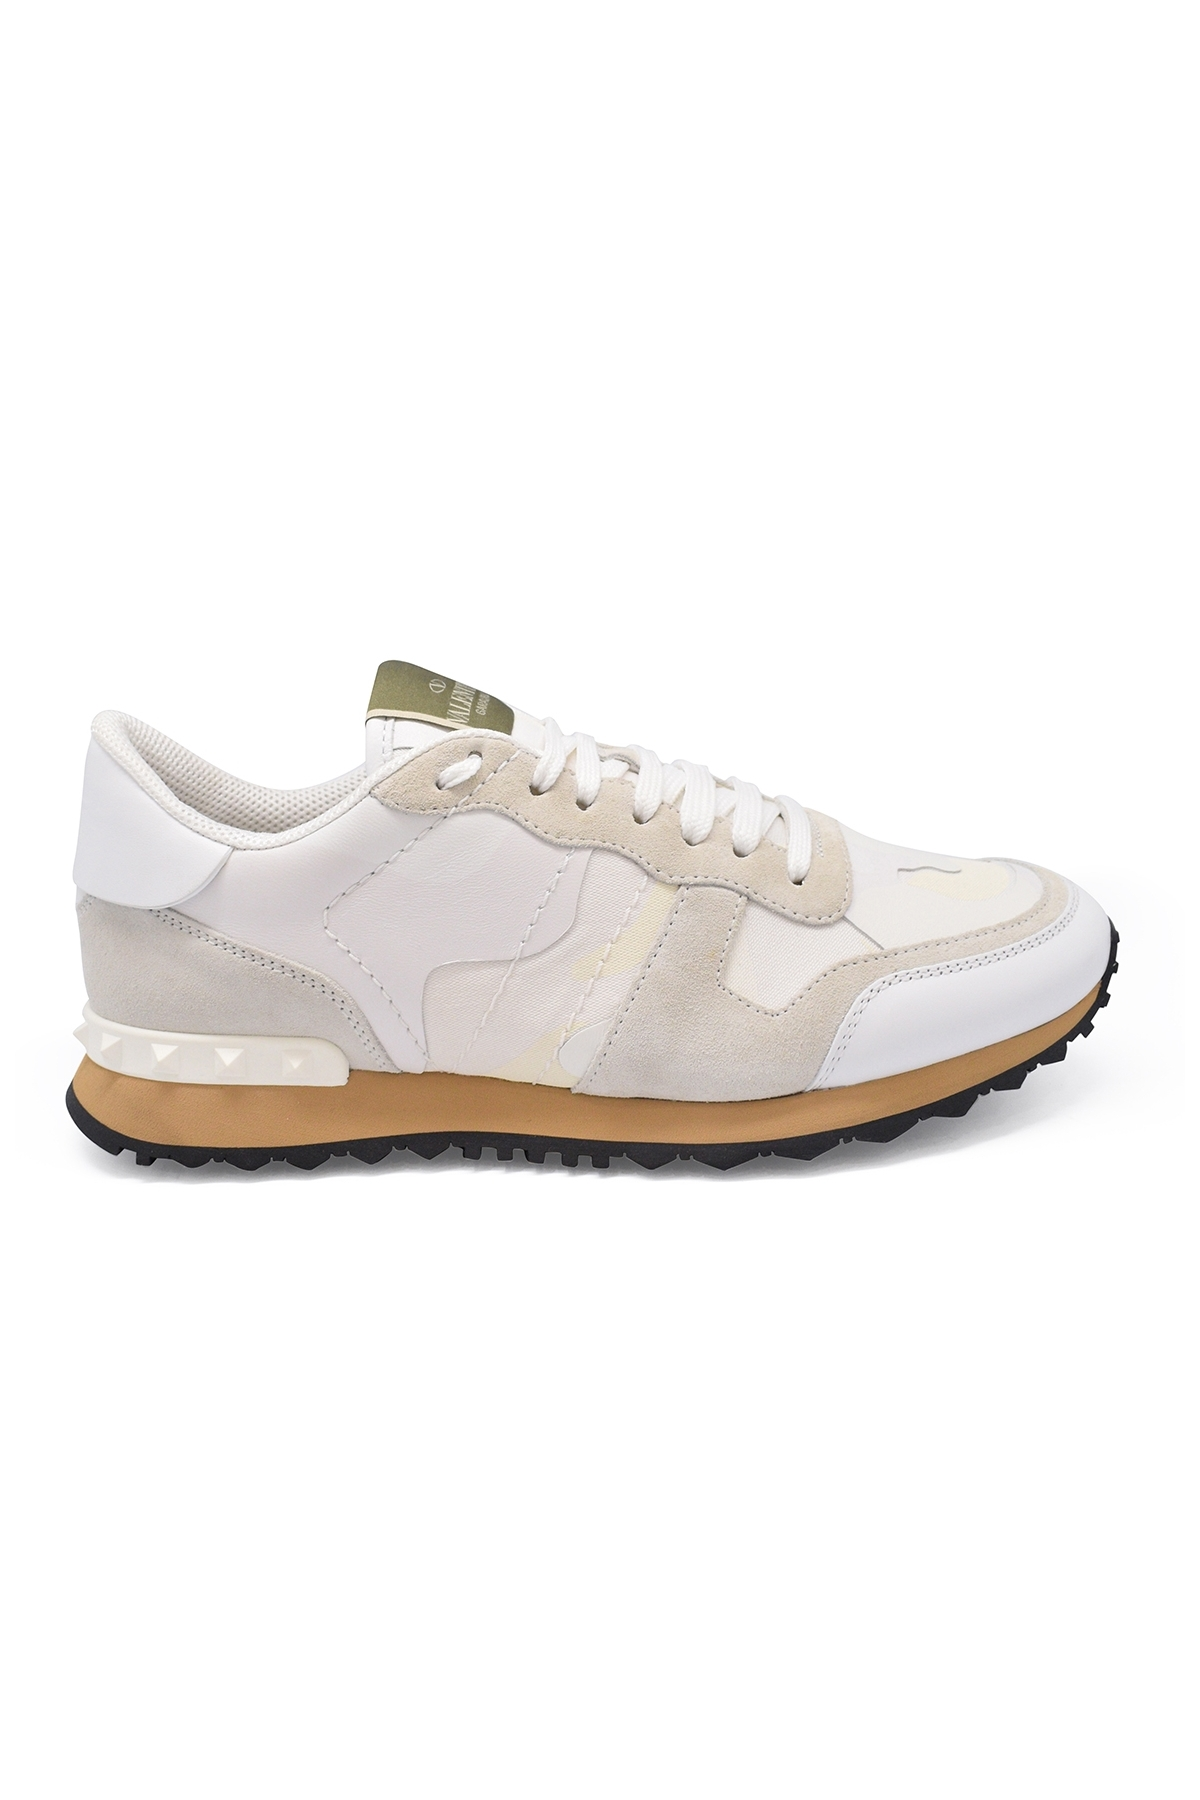 Valentino Rockrunner camouflage sneakers in white and beige fabric and nappa